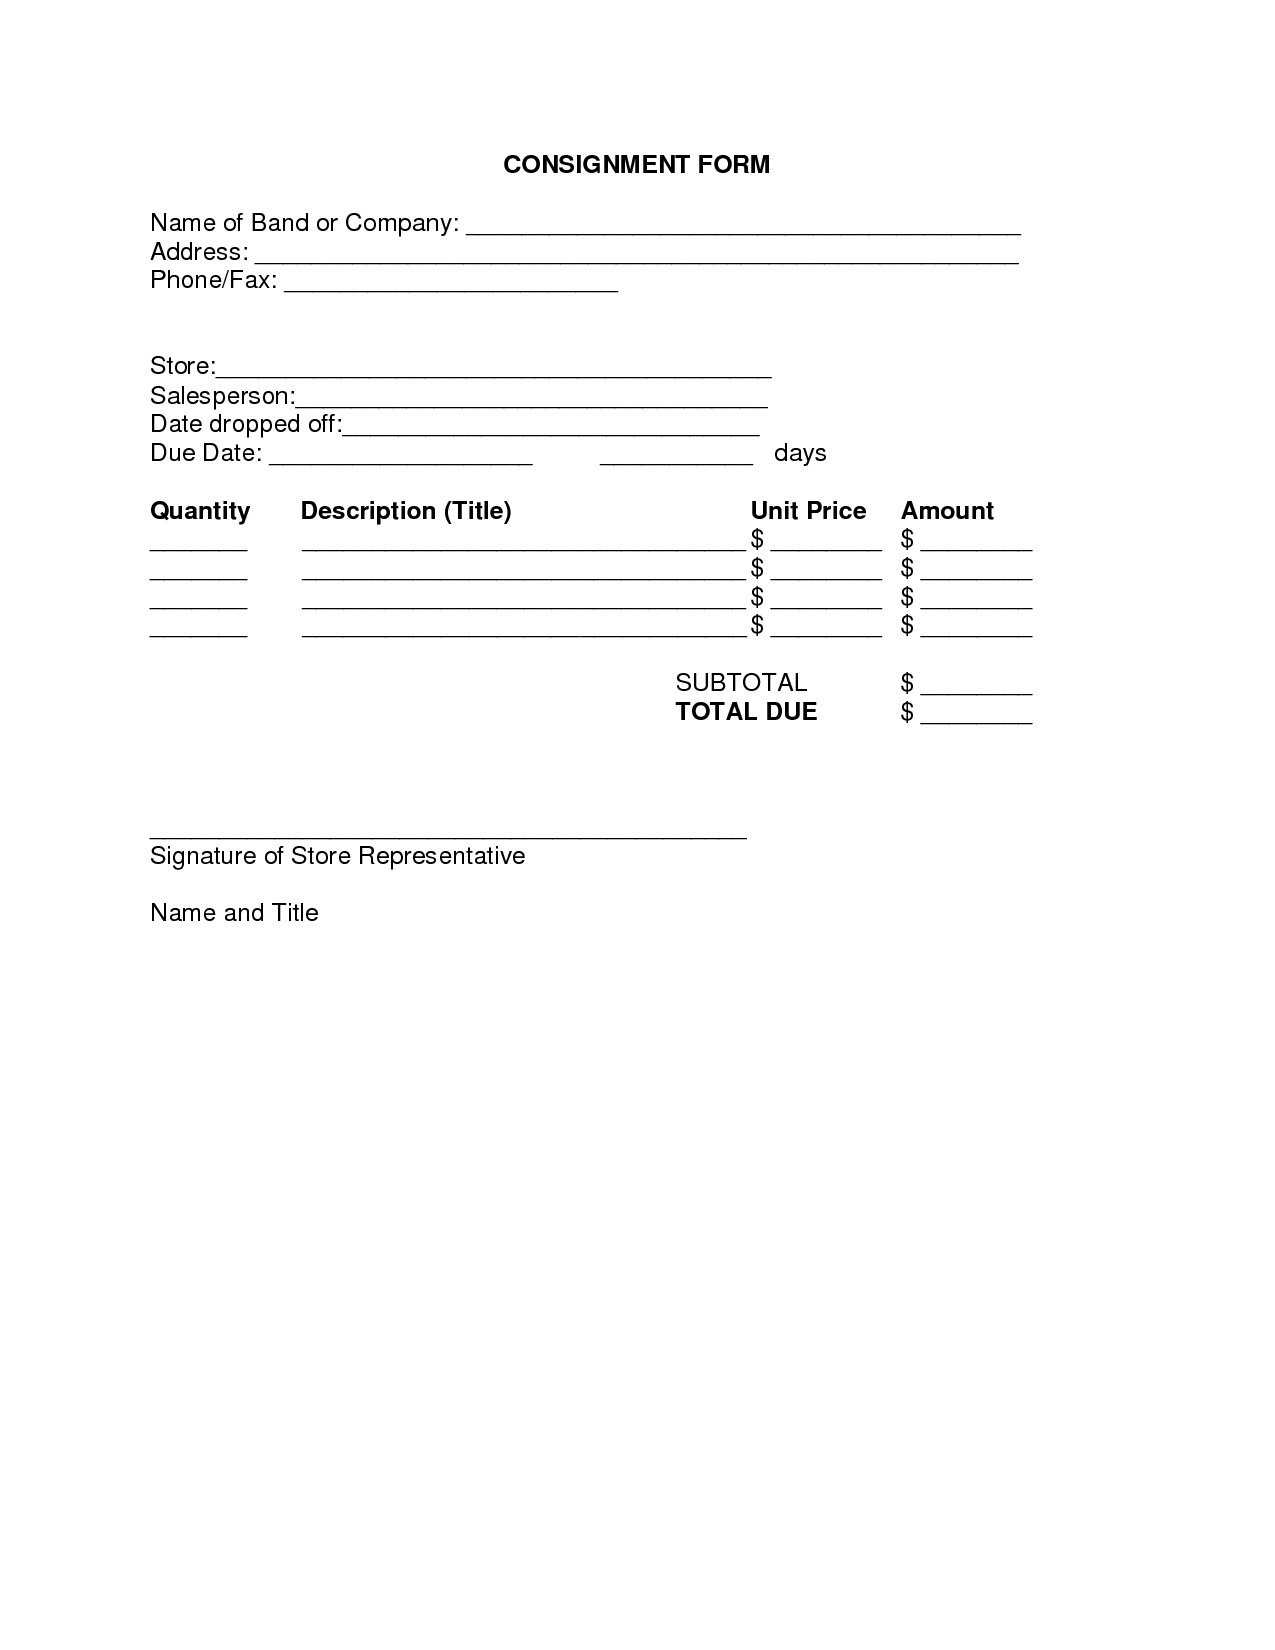 Consignment Form by BrittanyGibbons - consignment forms | Real ...